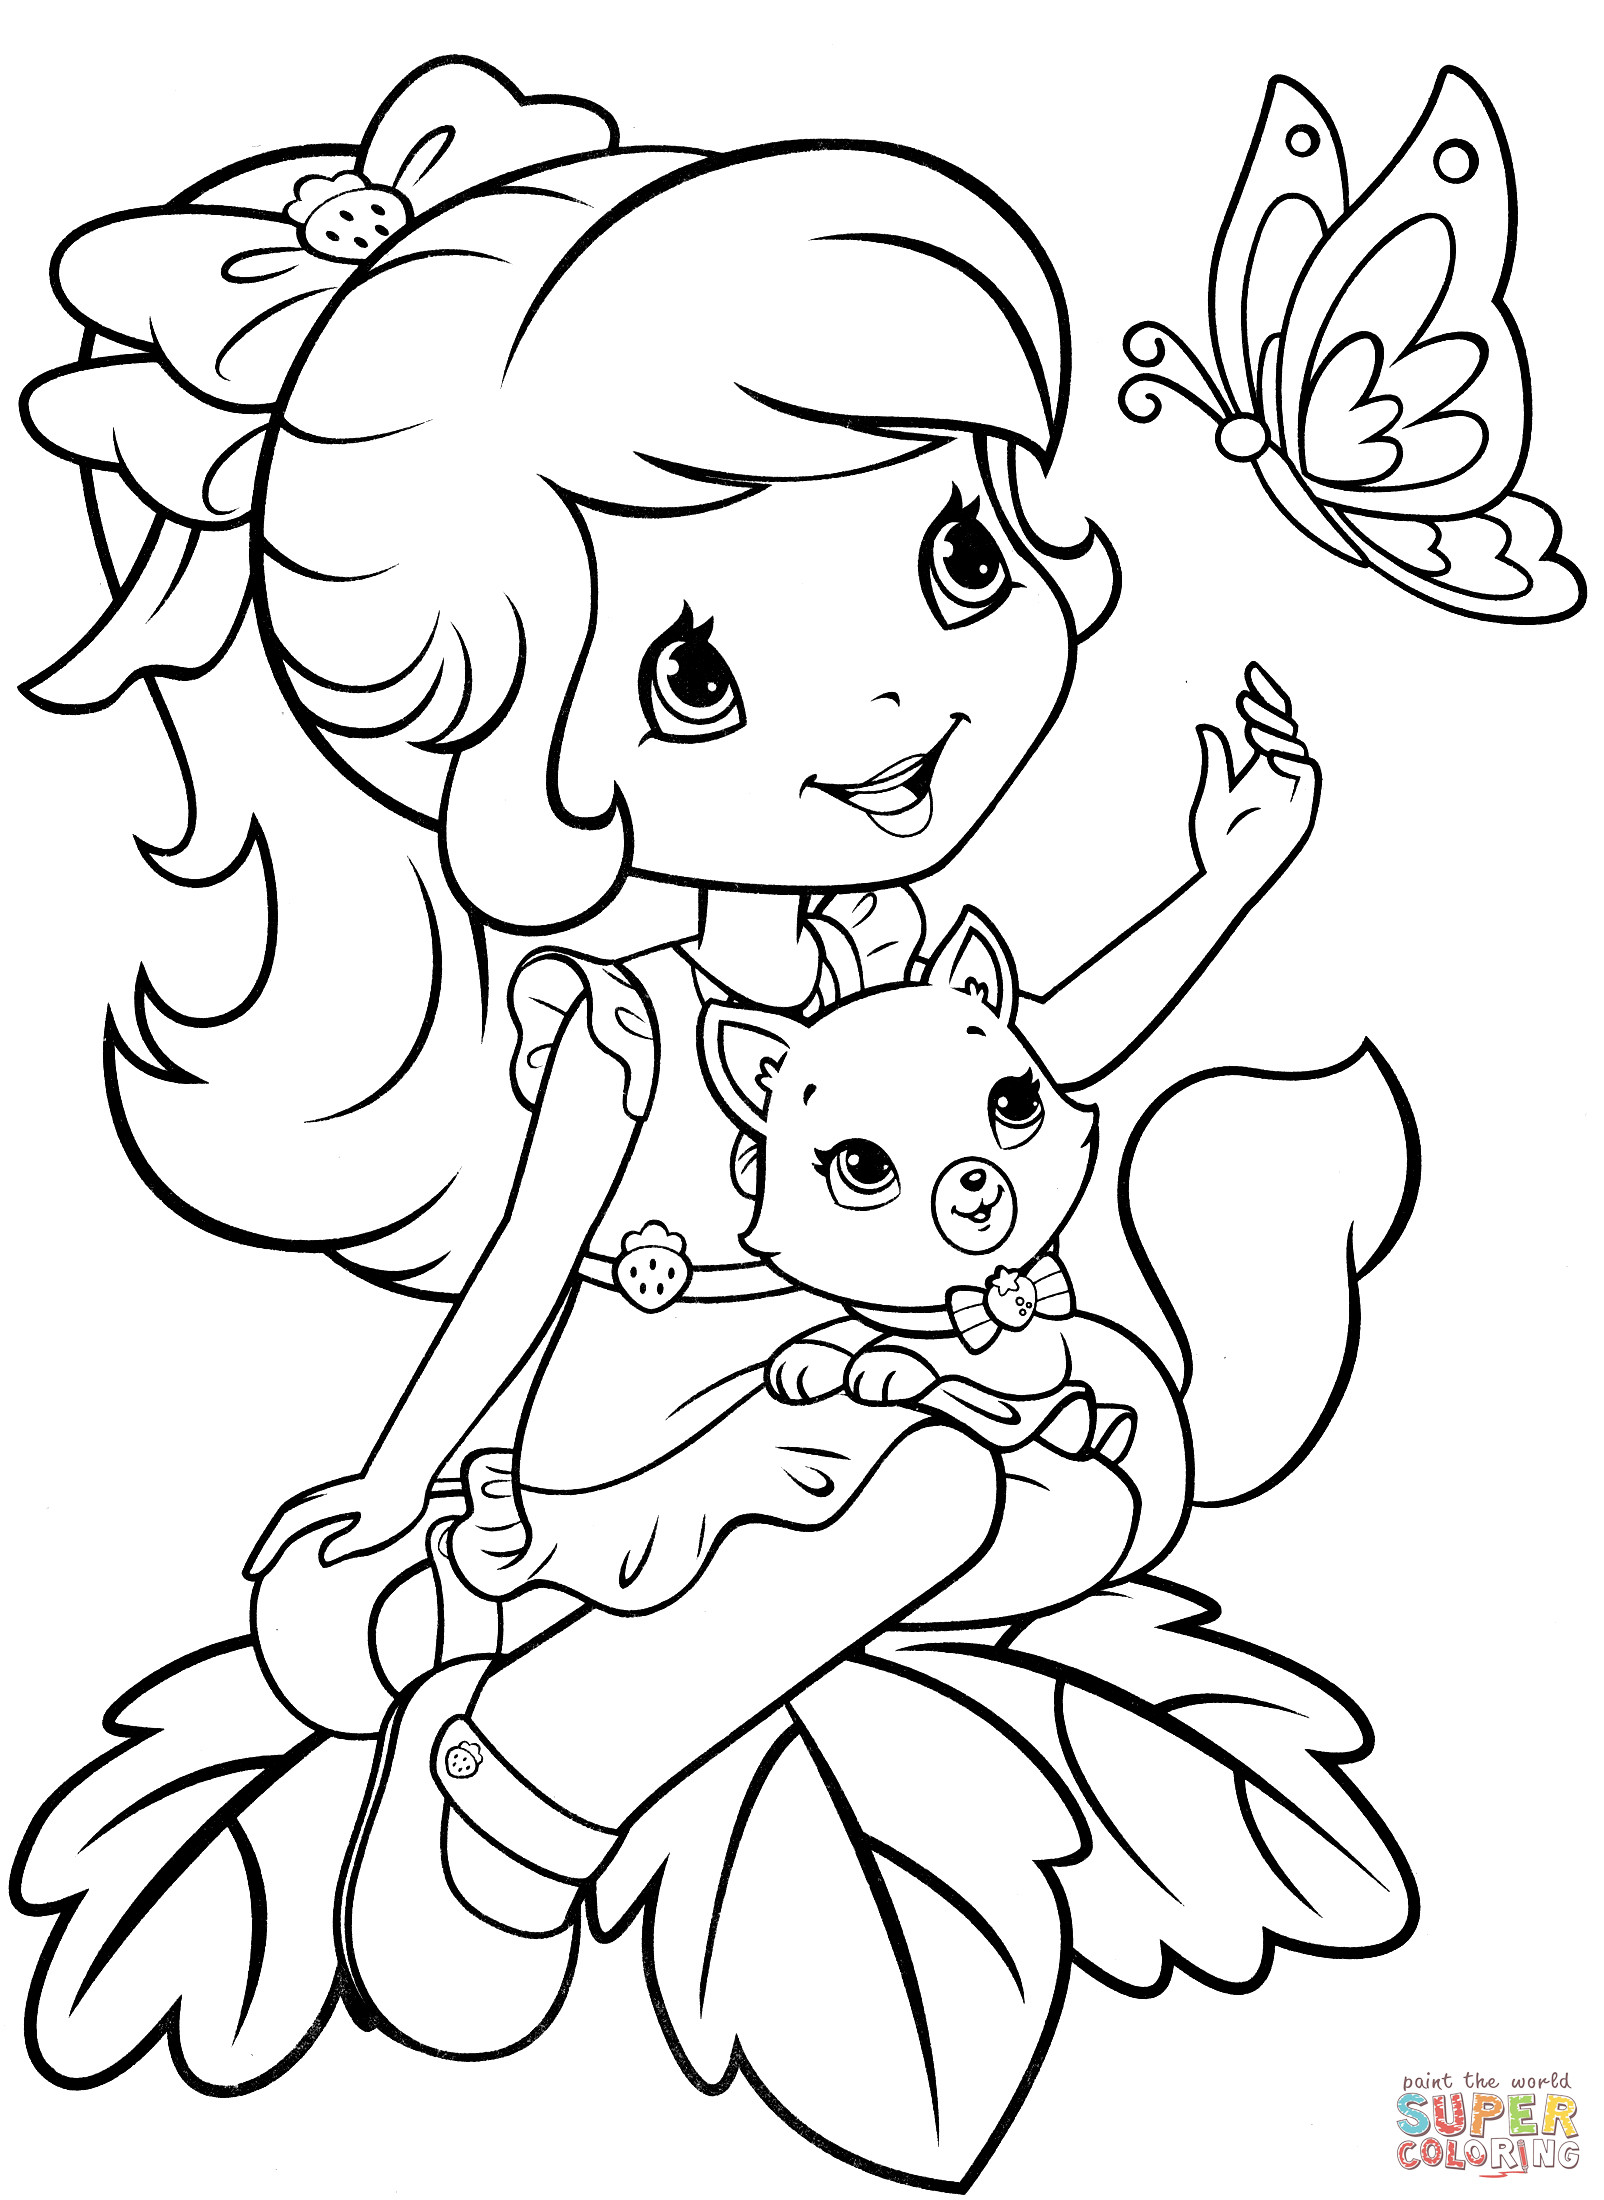 Strawberry Shortcake Coloring Page  Strawberry Shortcake with Custard and Butterfly coloring